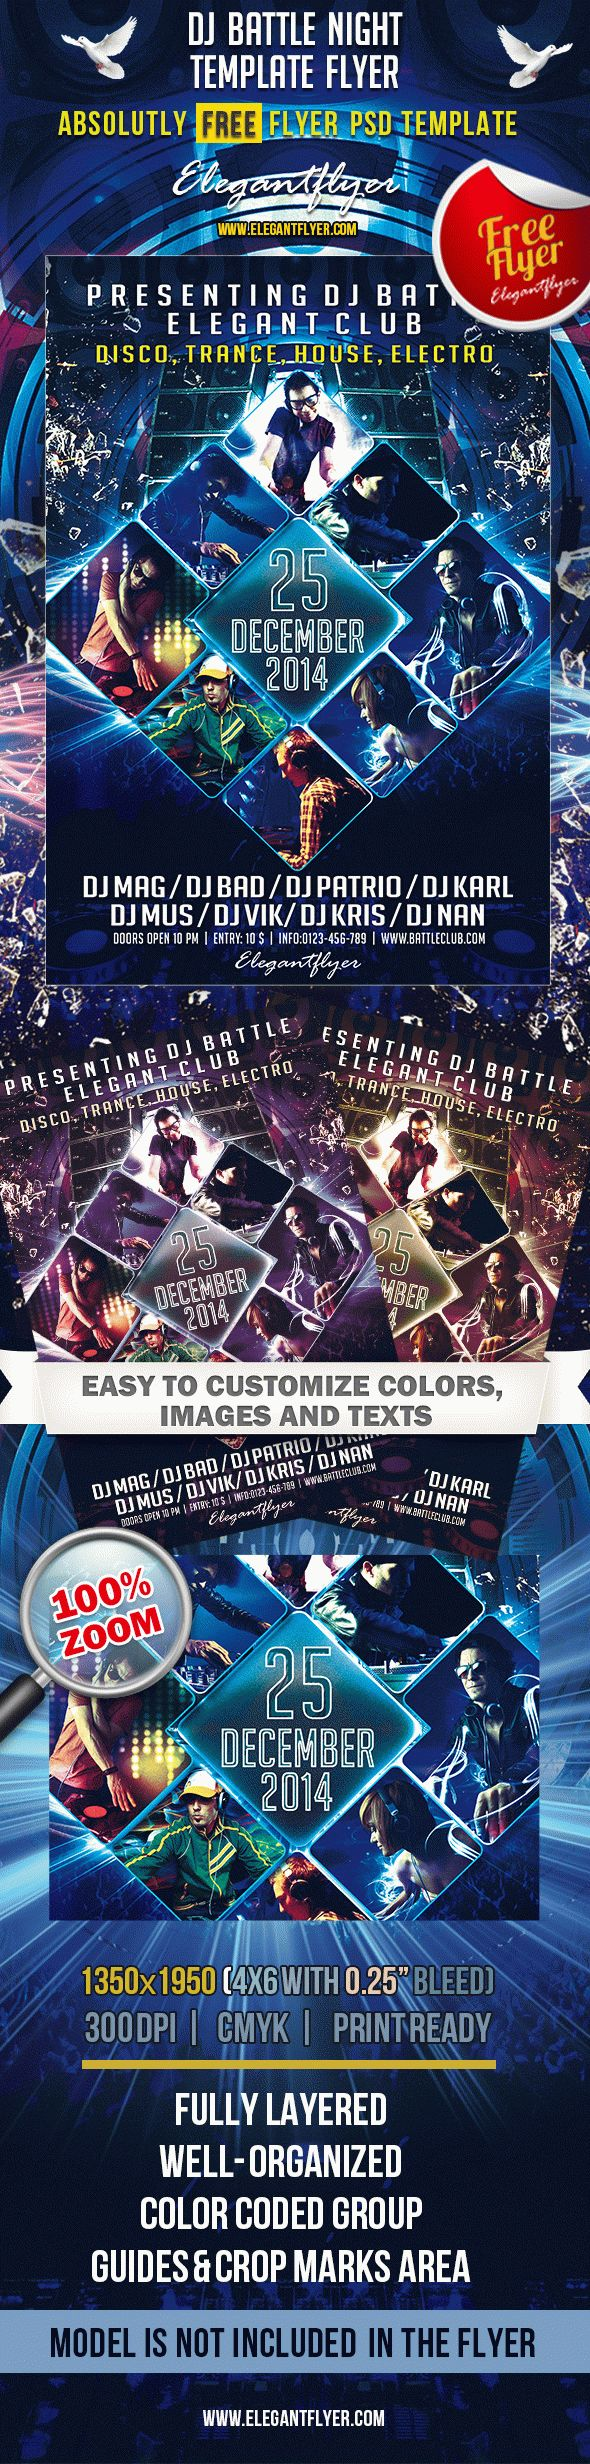 Party For Dj Battle Night Template By Elegantflyer